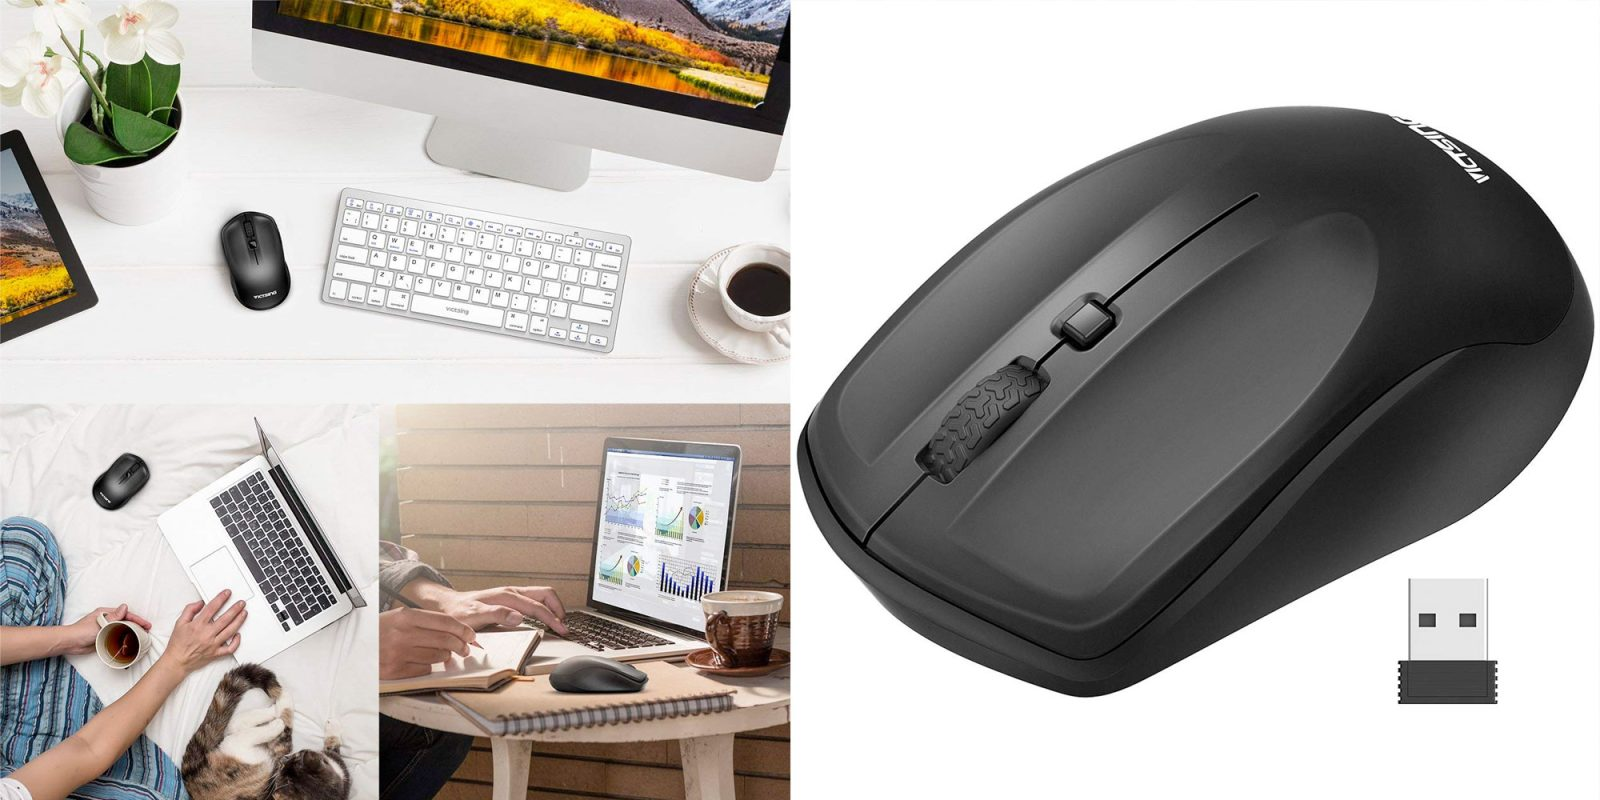 This $5 Prime shipped wireless mouse is a must-have for any laptop